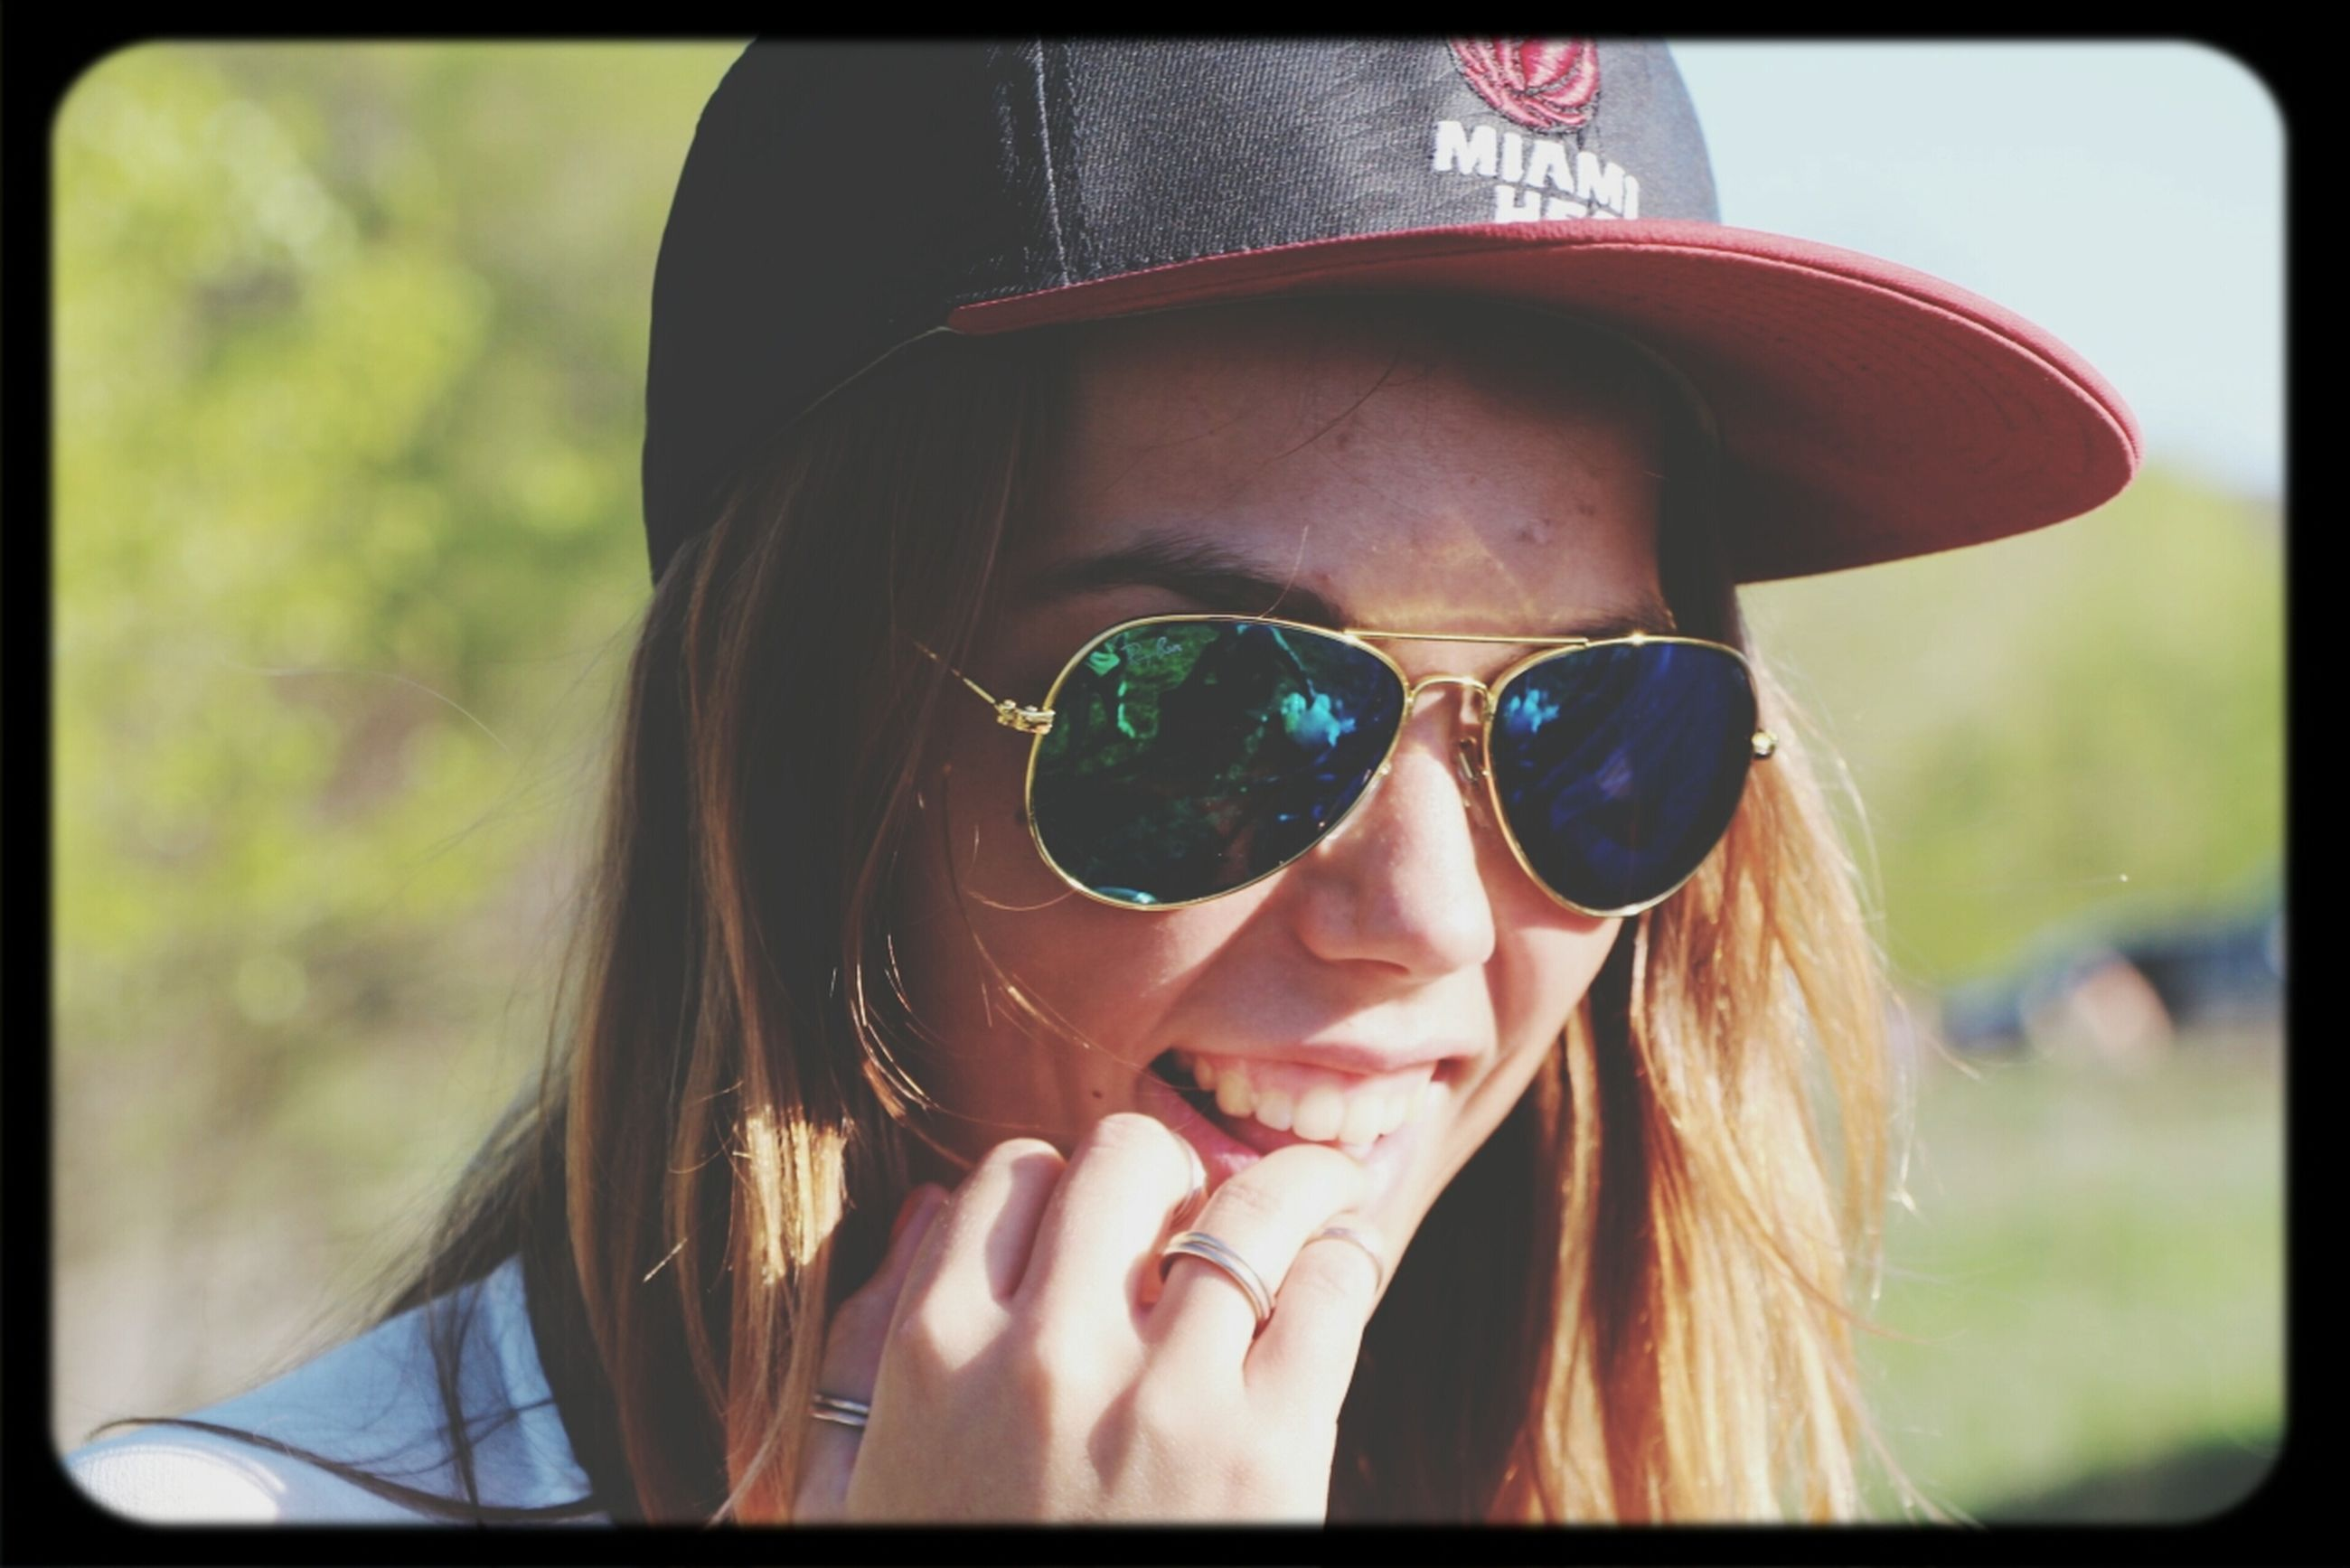 headshot, young adult, person, young women, lifestyles, portrait, looking at camera, leisure activity, sunglasses, head and shoulders, close-up, focus on foreground, front view, long hair, smiling, transfer print, auto post production filter